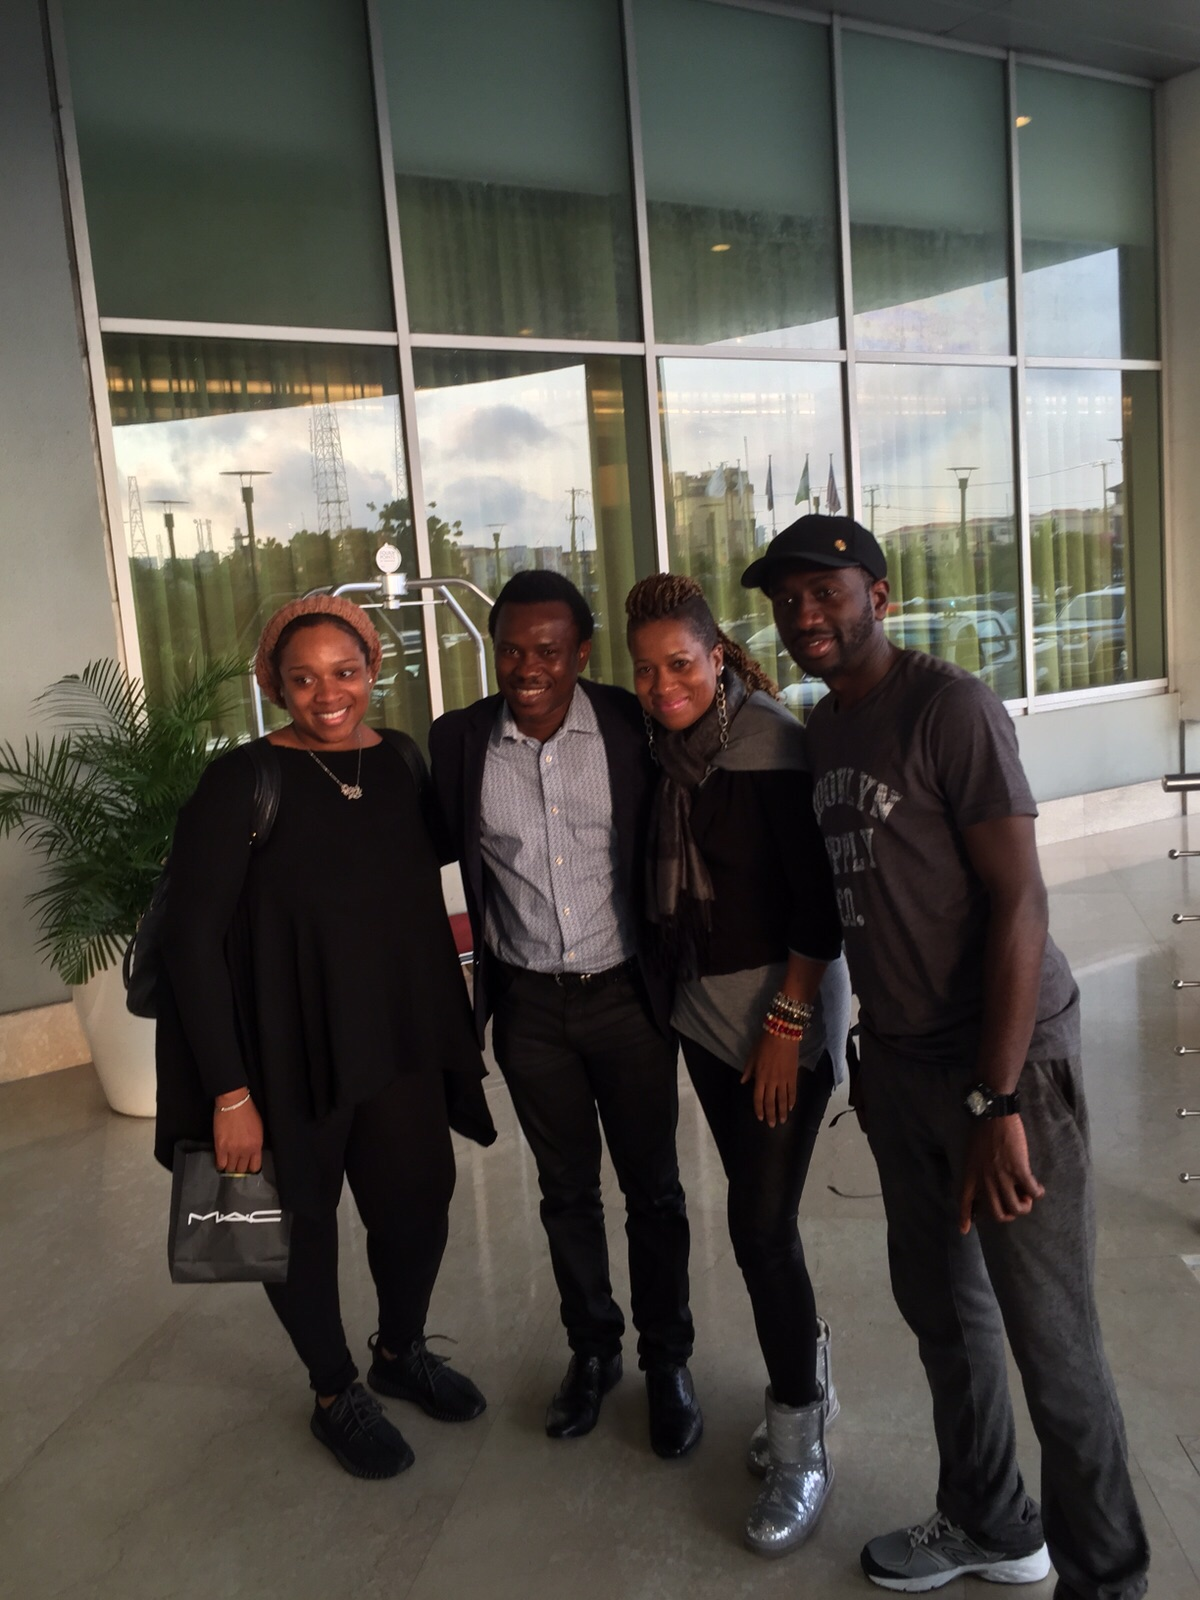 Kierra with Manager Cynthia, Tim (CEO, Tehila Records), and Uche Agu